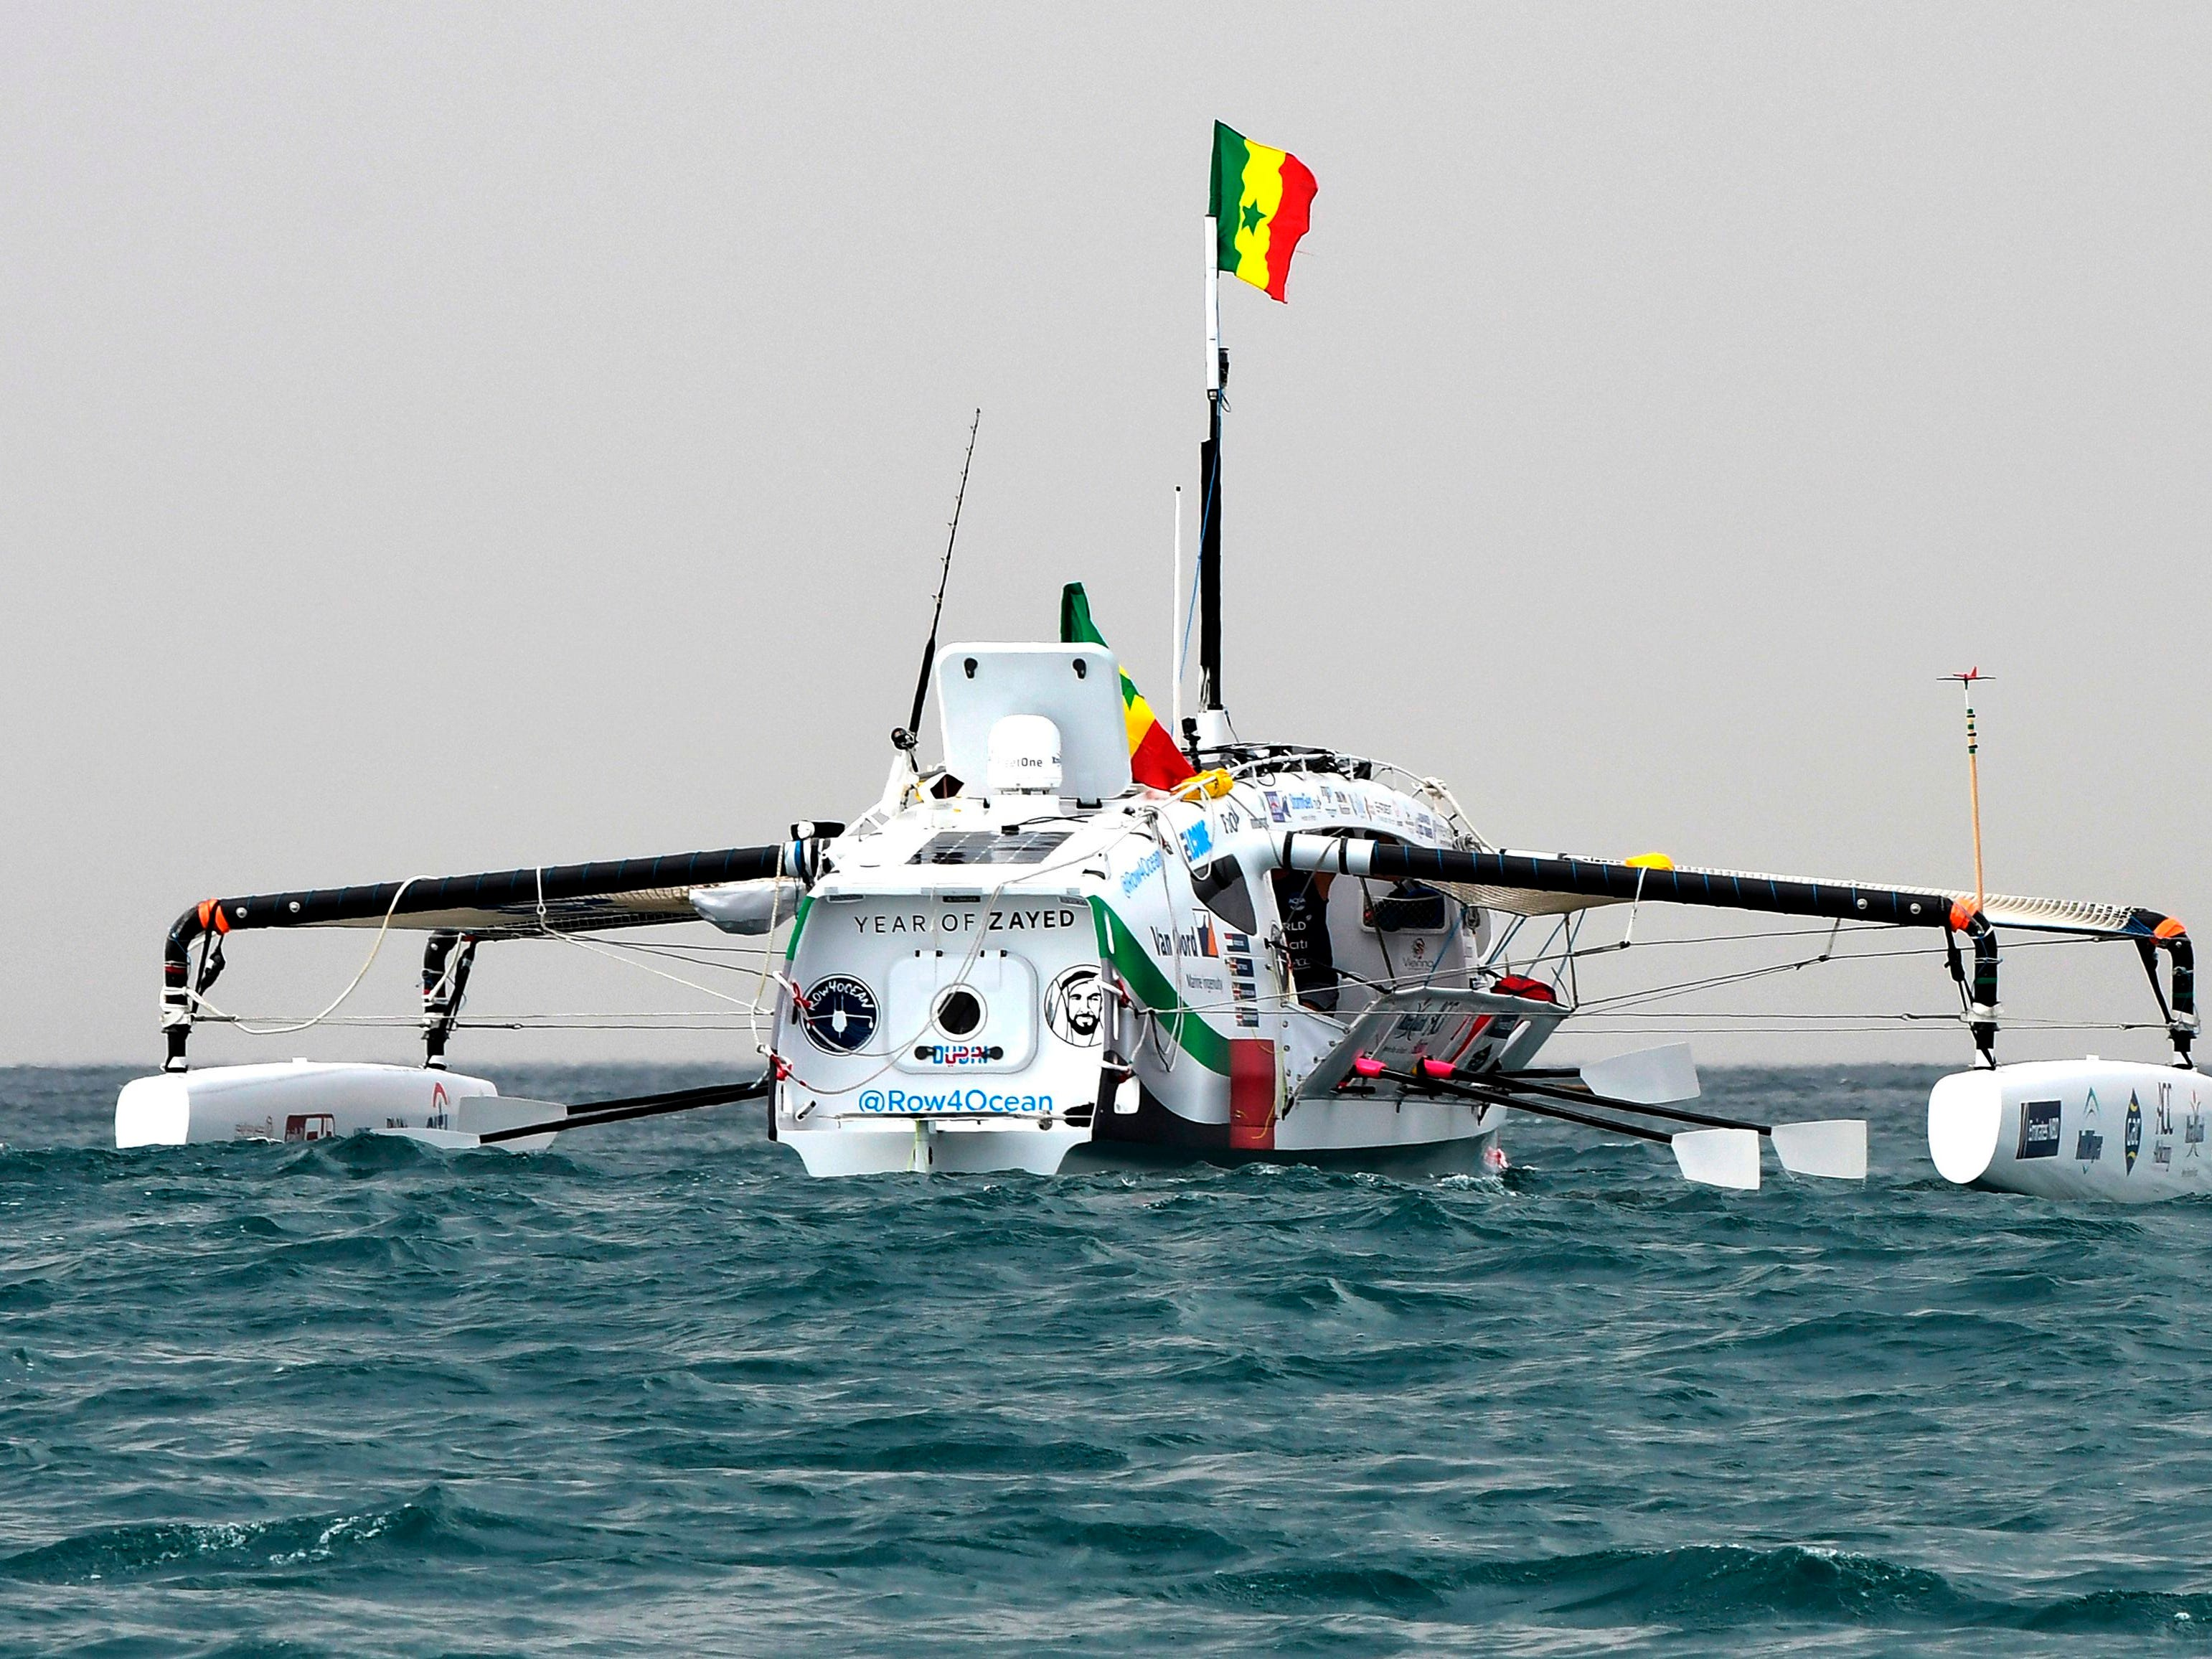 The Row4ocean rowing trimaran leaves Dakar, West Africa, to cross the Atlantic on Dec. 14, 2018. The trimaran took off for a crossing of the Atlantic Ocean  to Suriname to draw attention to the plastic pollution of the seas and rivers. The crew hopes the project will raise funds to help clean up the Indus River, one of the largest rivers in Asia and one of the 10 most polluted rivers in the world, according to a study published by the journal Environmental Science & Technology.